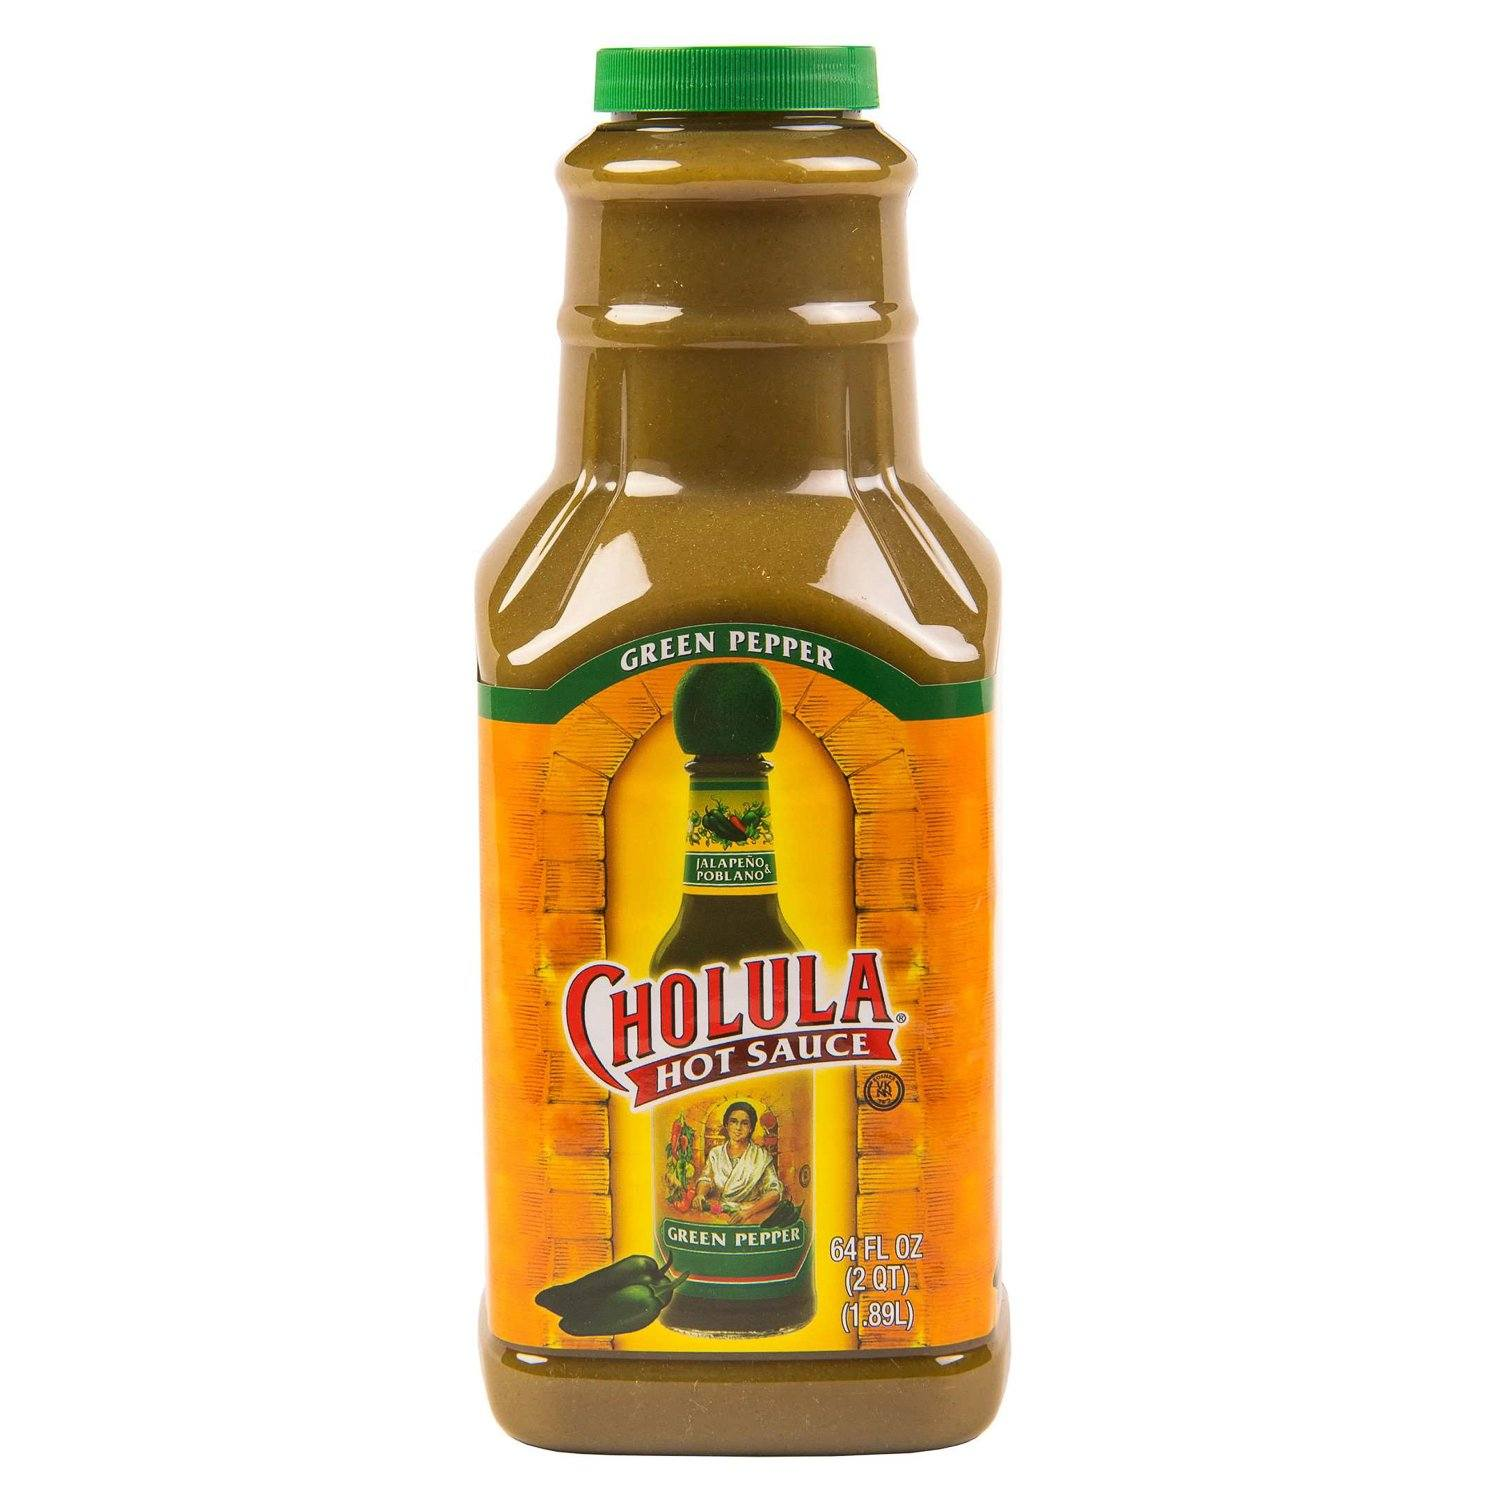 Cholula Hot Sauce Cholula Green Pepper 64 Fluid Ounce